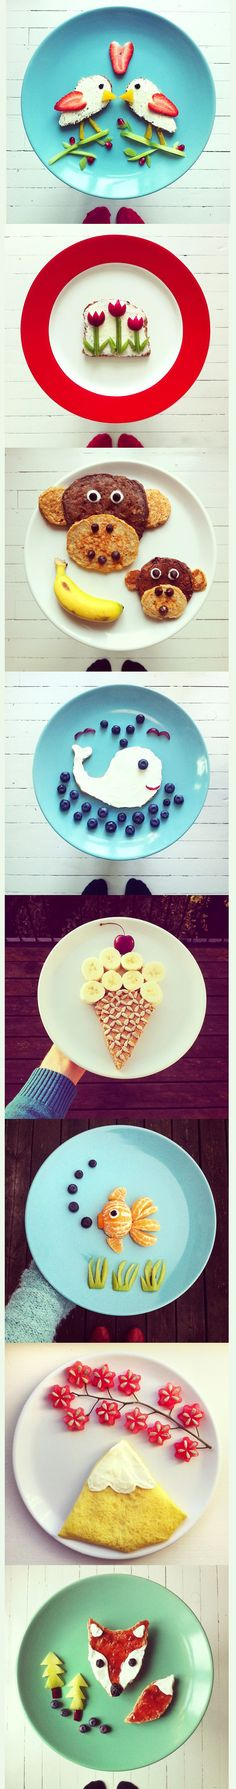 techlovedesign: Cheerful Food Art